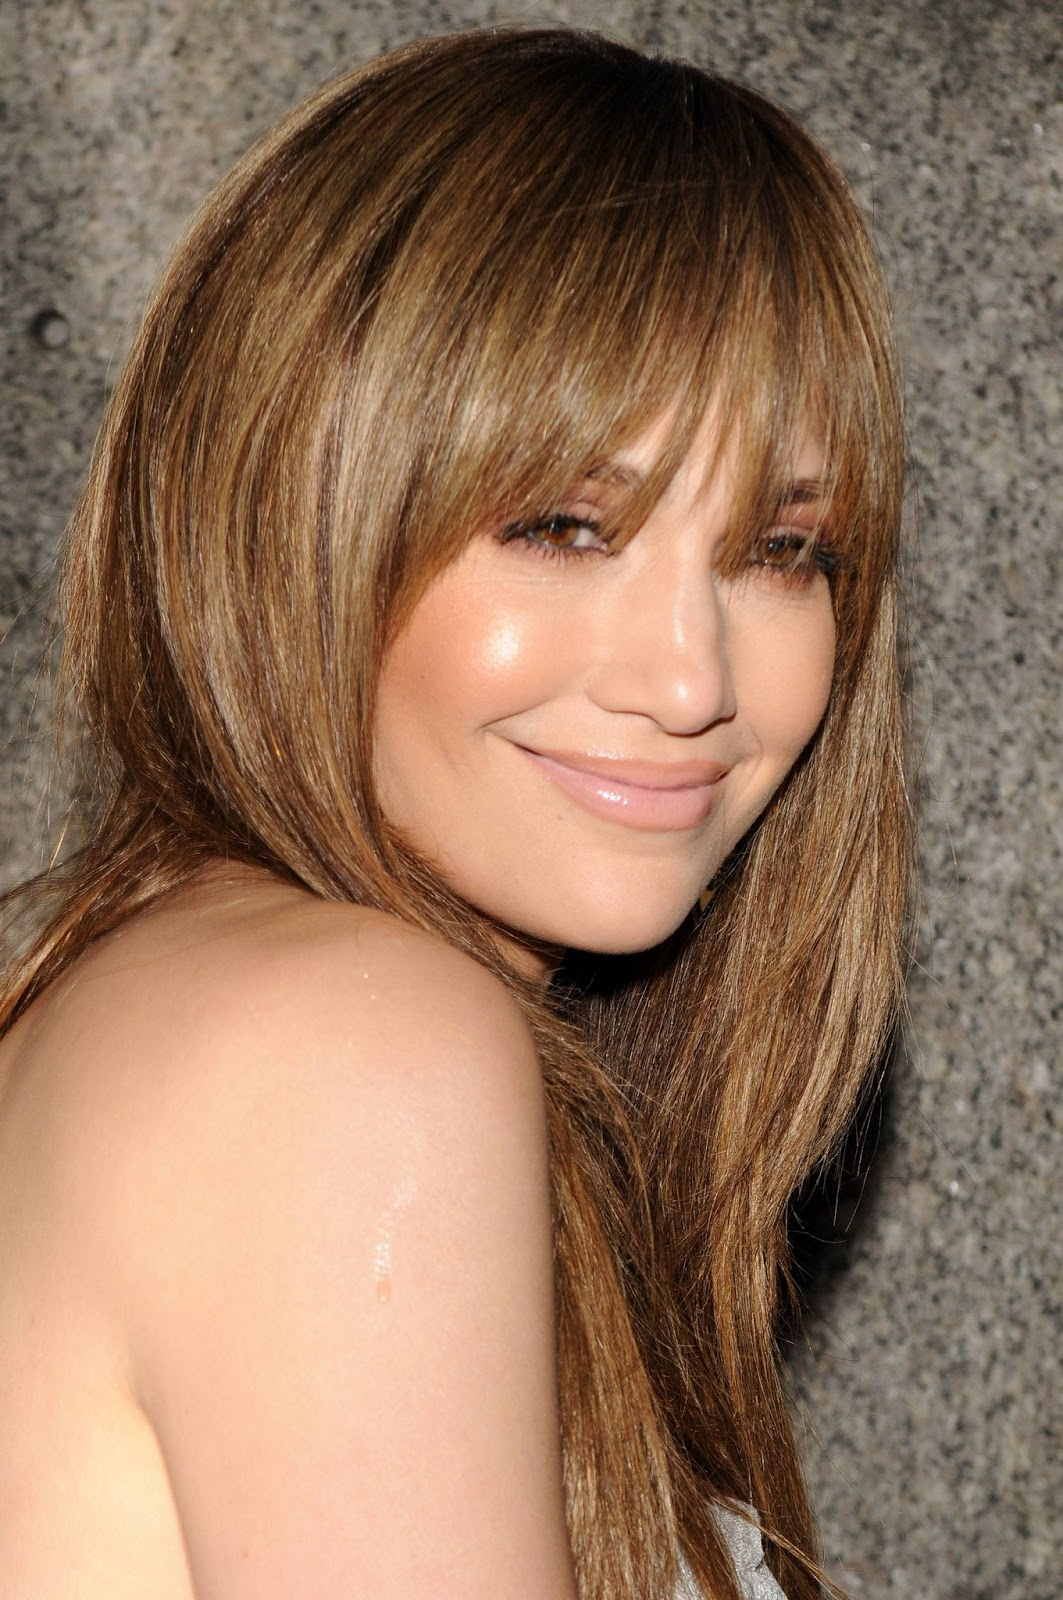 hairstyles  with bangs  2013 hair  trends